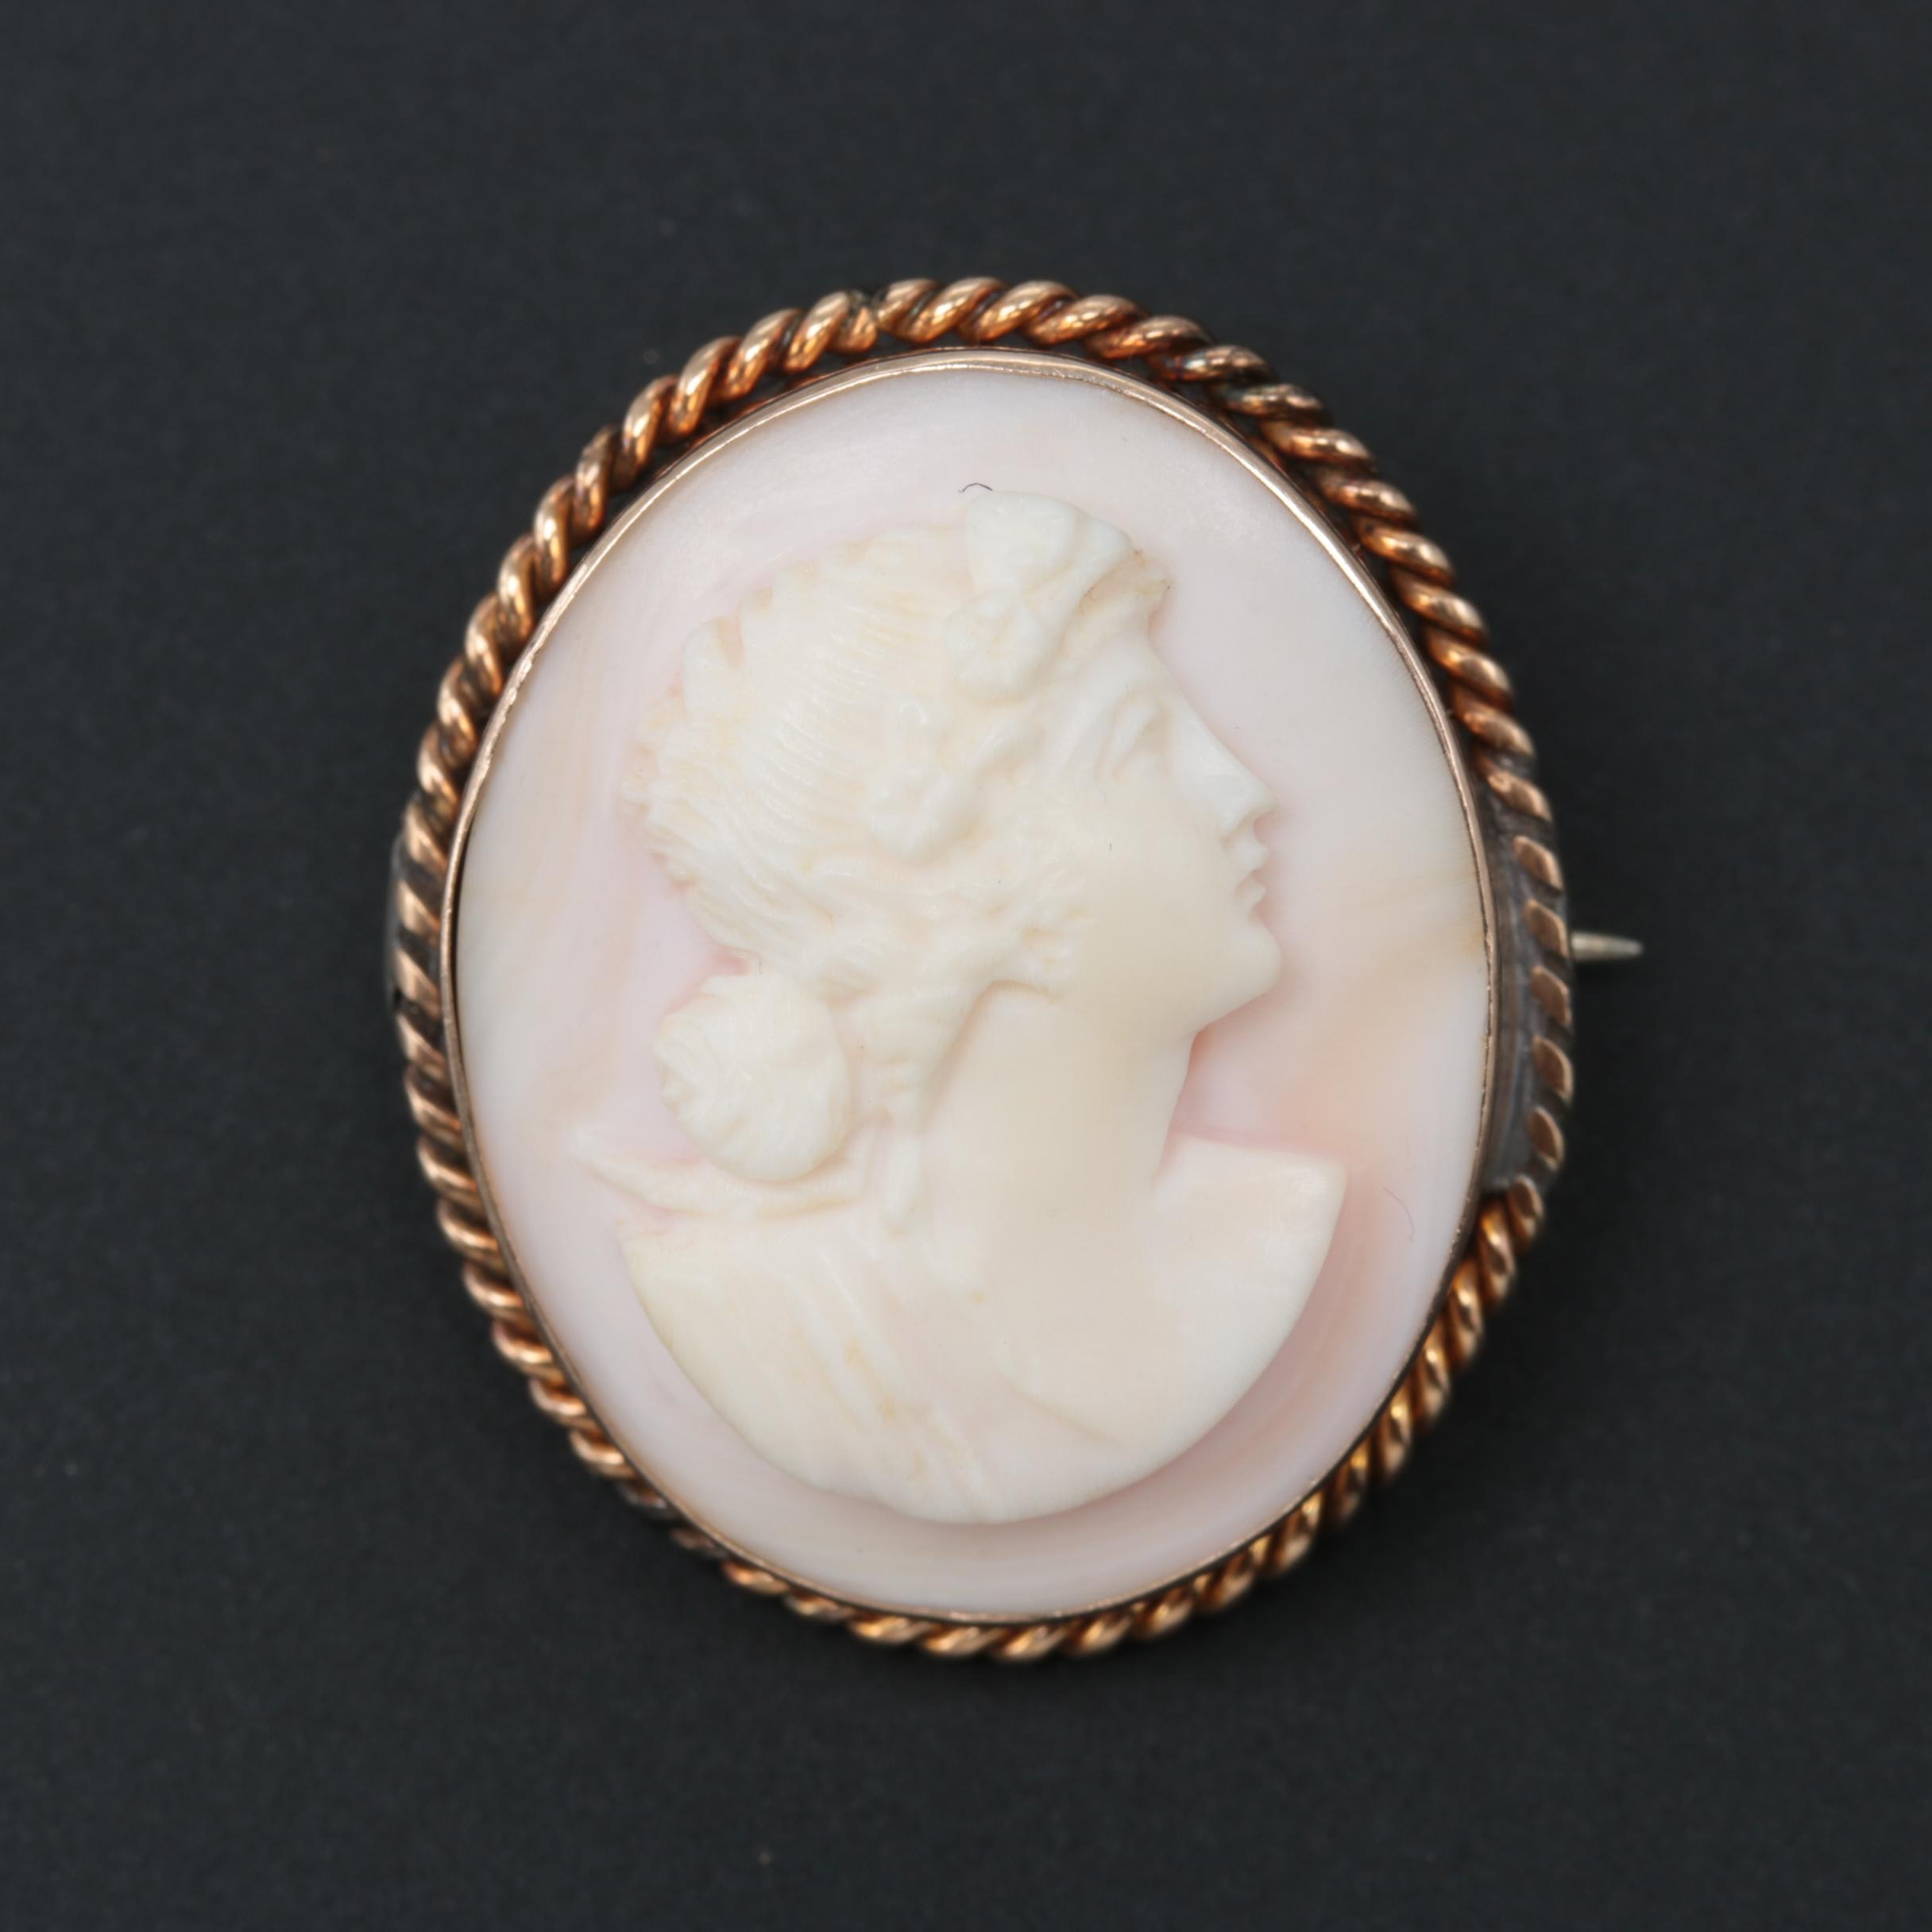 Vintage 10K Yellow Gold Conch Shell Cameo Brooch